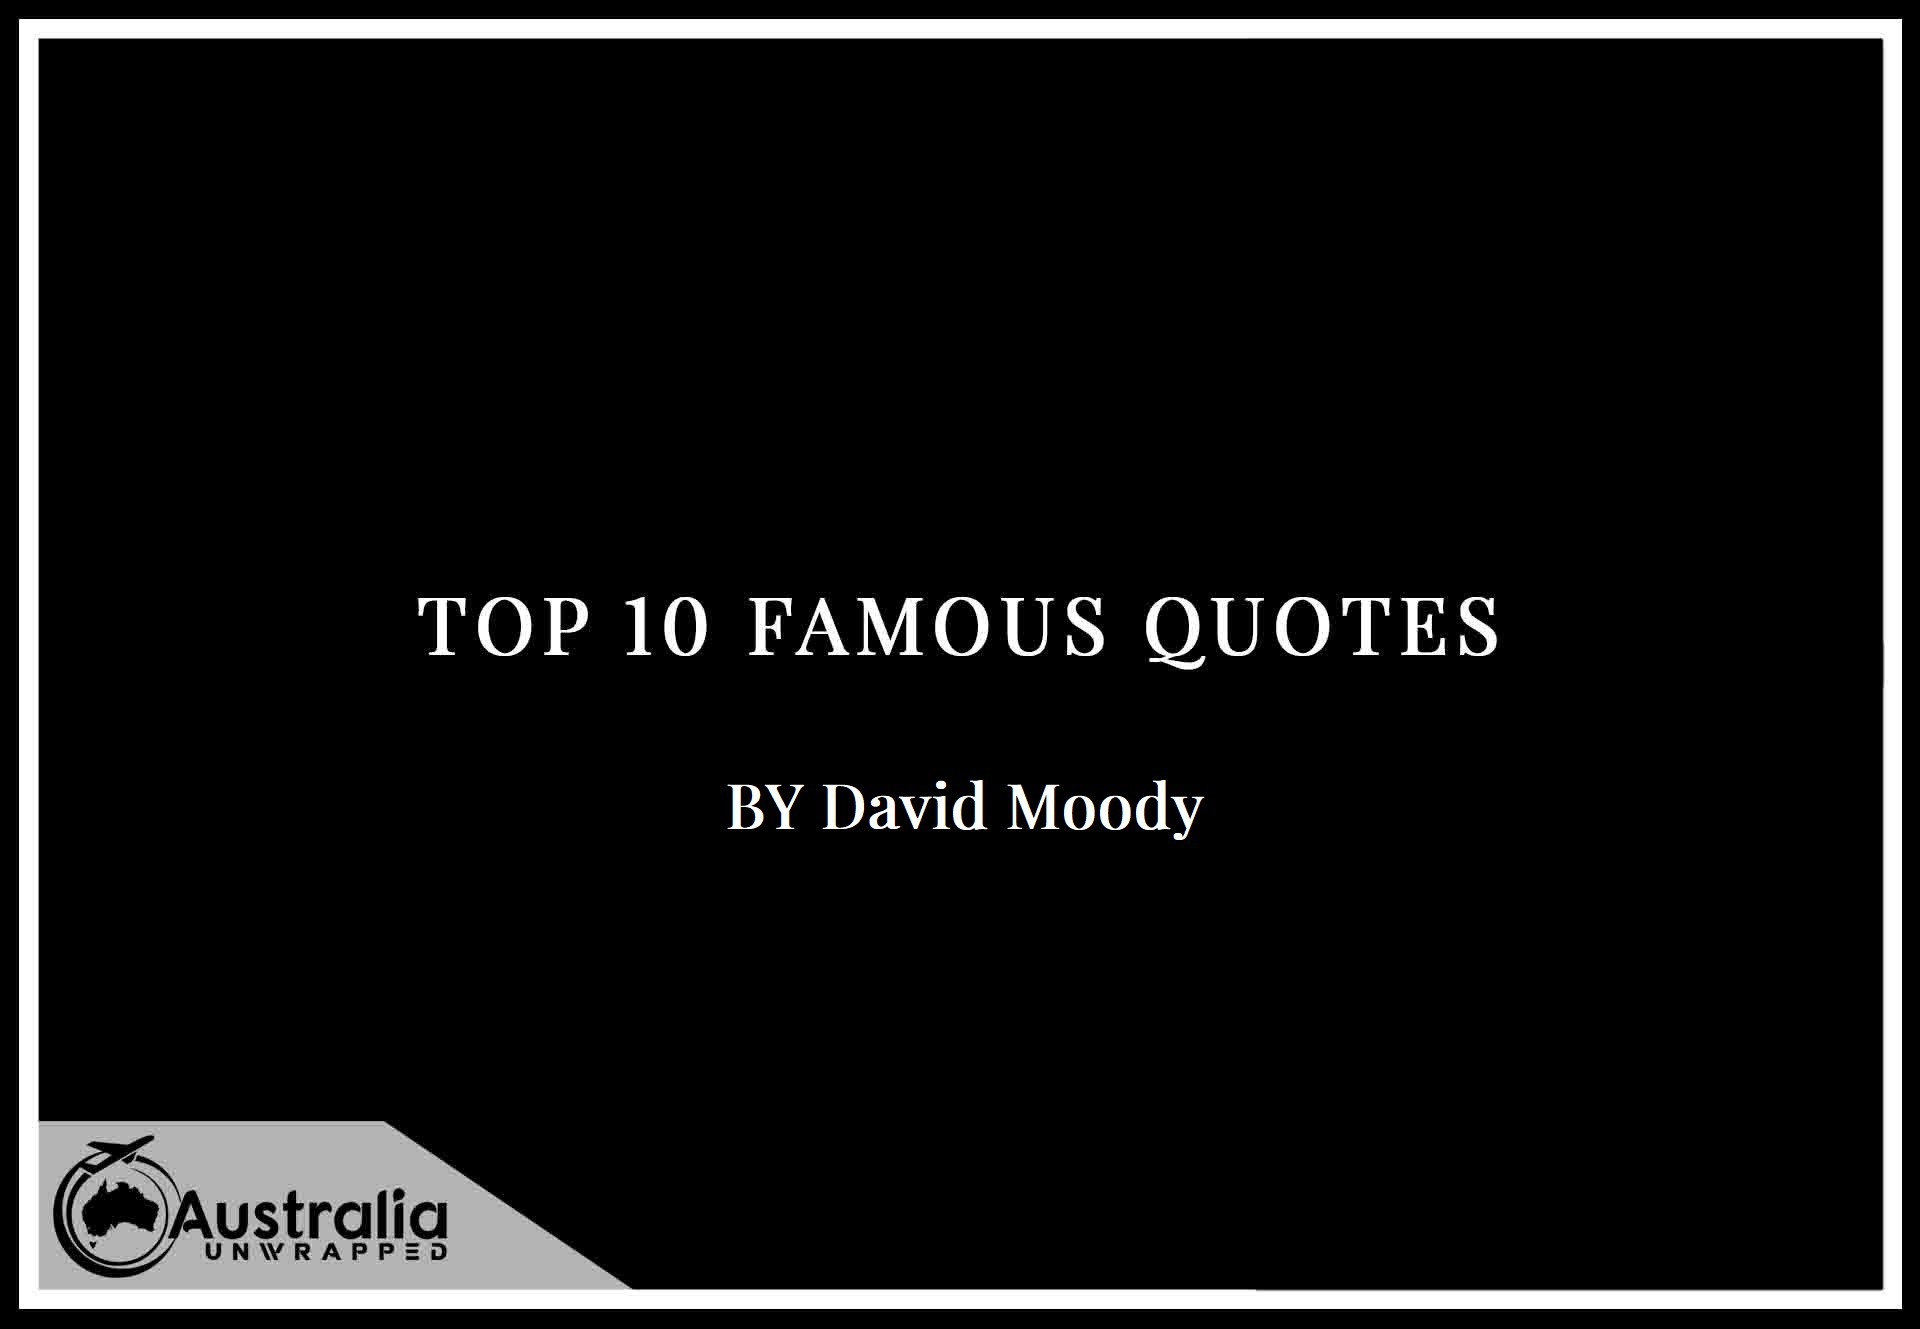 Top 10 Famous Quotes by Author David Moody